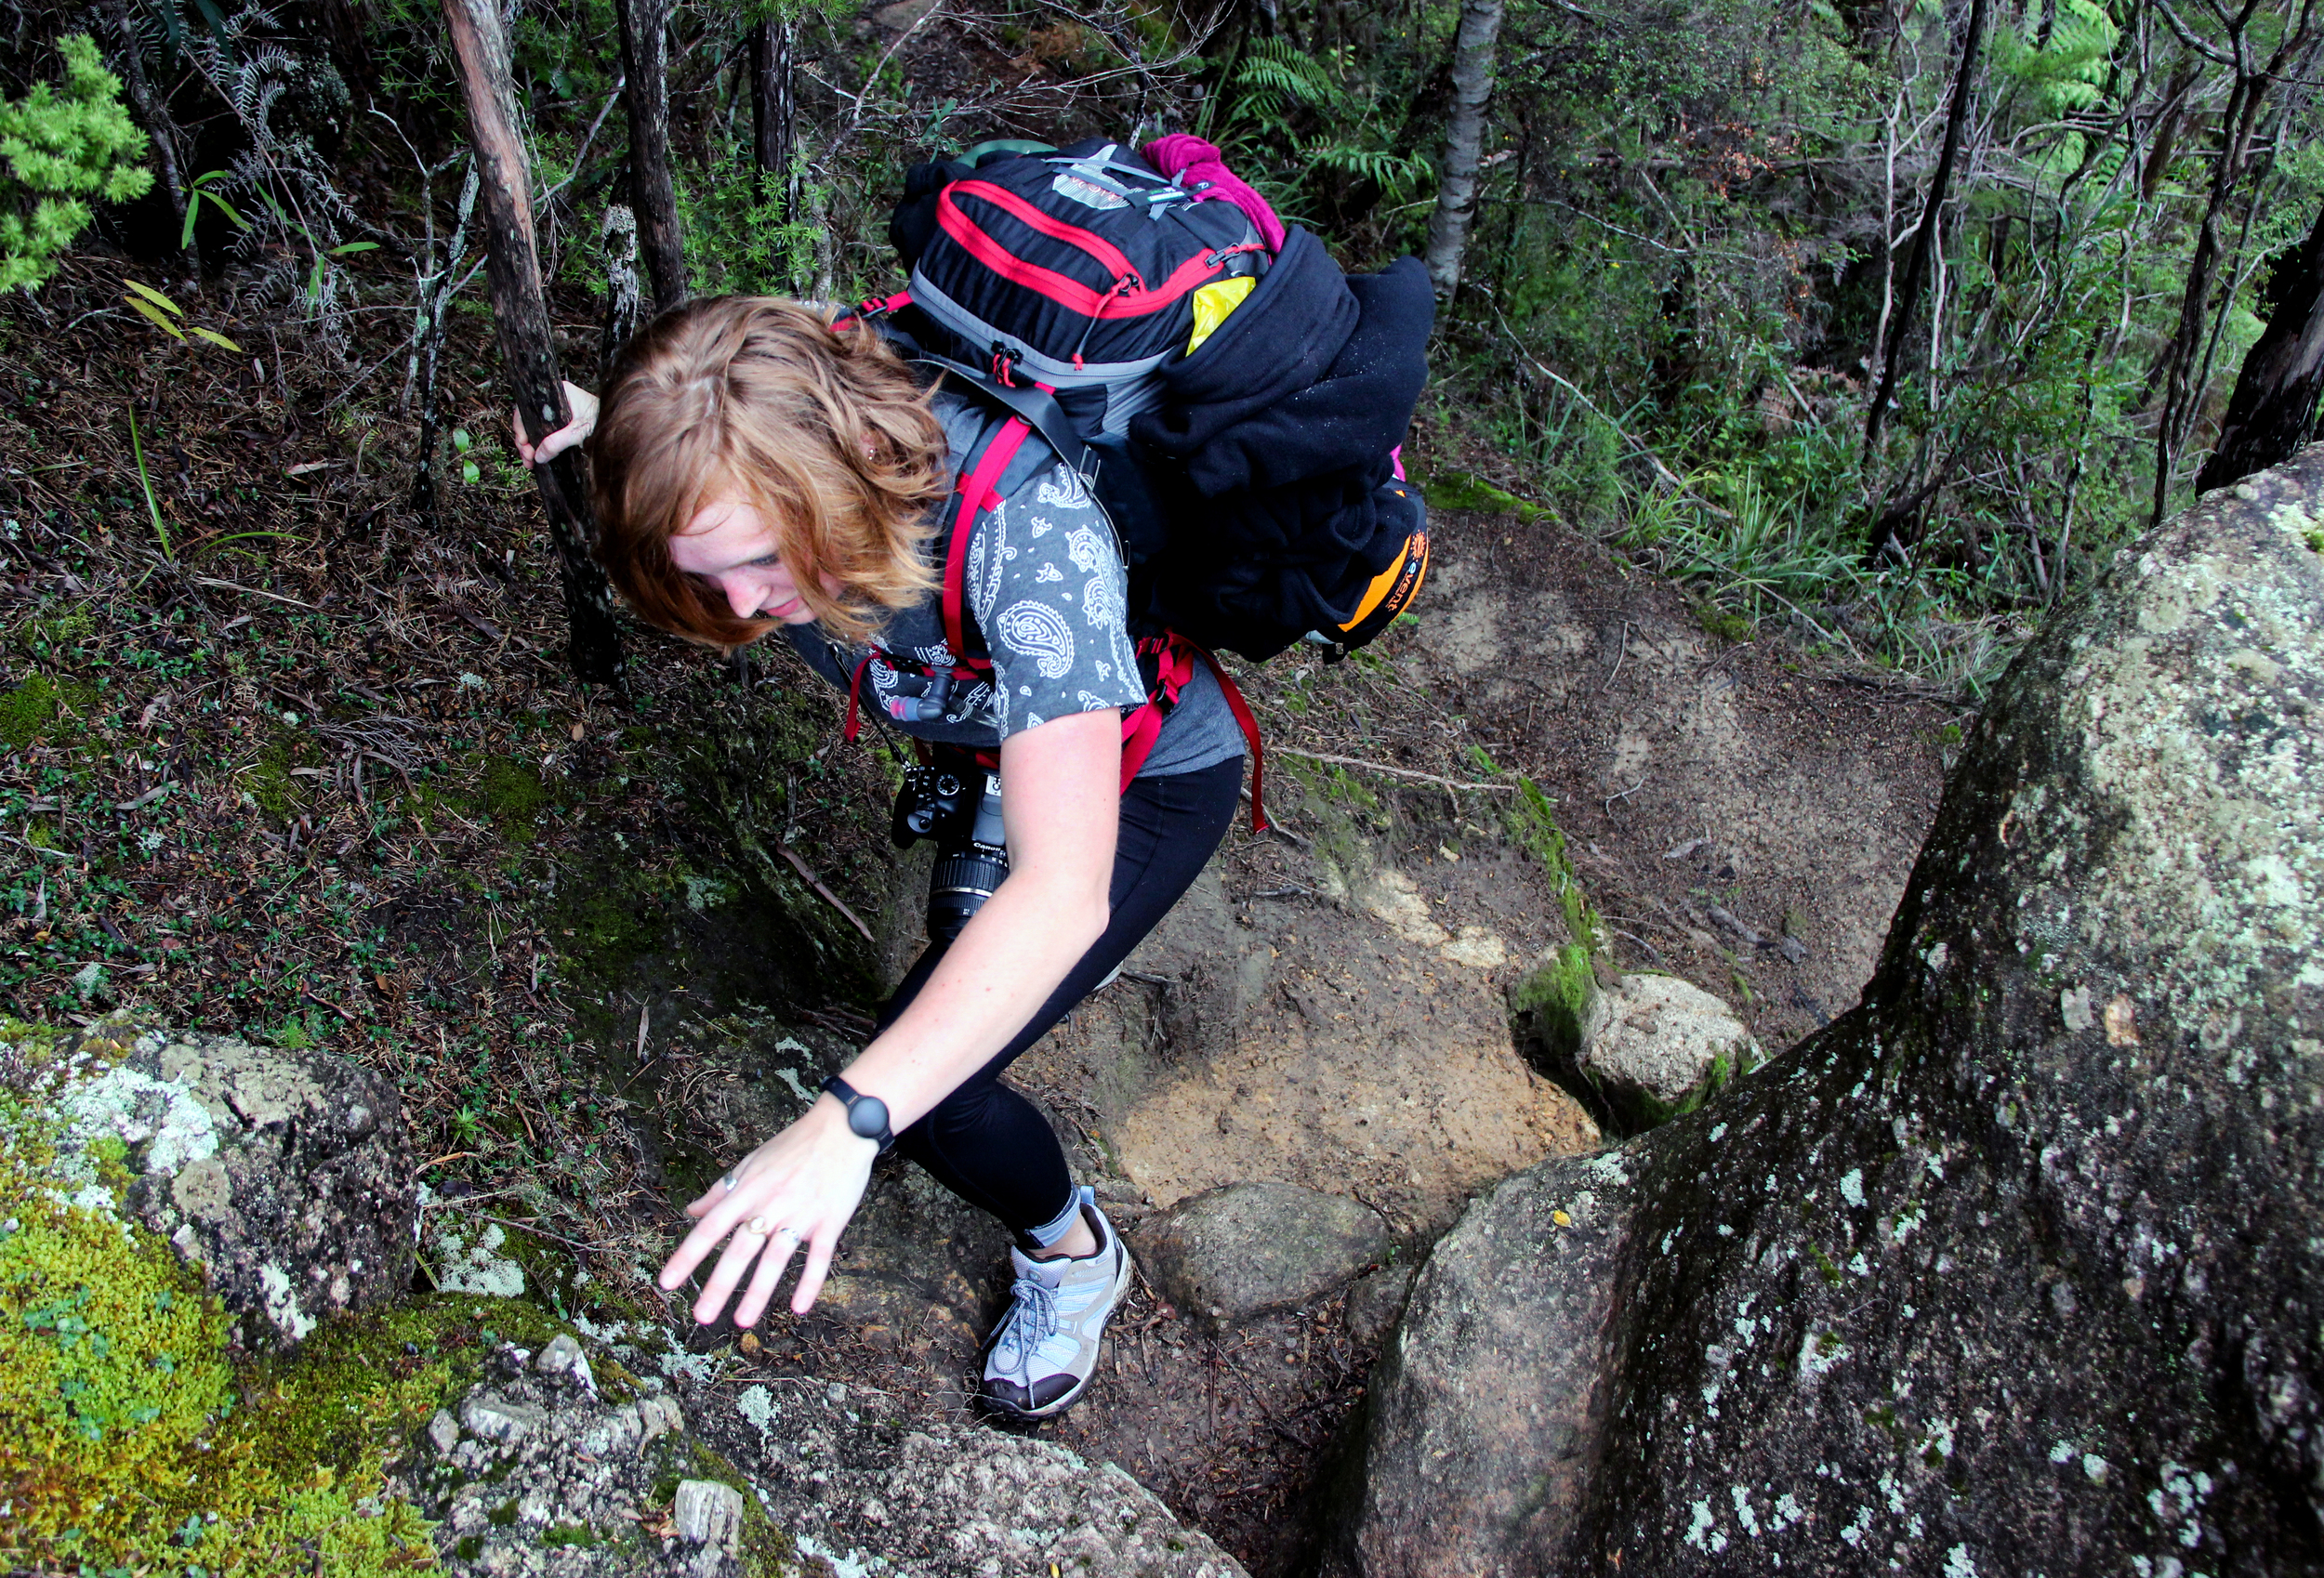 """Jamie Quinn, 21, of Boston, climbs up a pathway of rocks on the Abel Tasman Inland Track.While the Coastal Track is classified as an easy Great Walk, its counterpart is labeled as an advanced tramping track. The Department of Conservation warns that this track is """"suitable for people with good fitness, moderate to high-level backcountry skills and experience (including navigation and survival skills) [is] required. Tramping/hiking boots [are]required."""""""